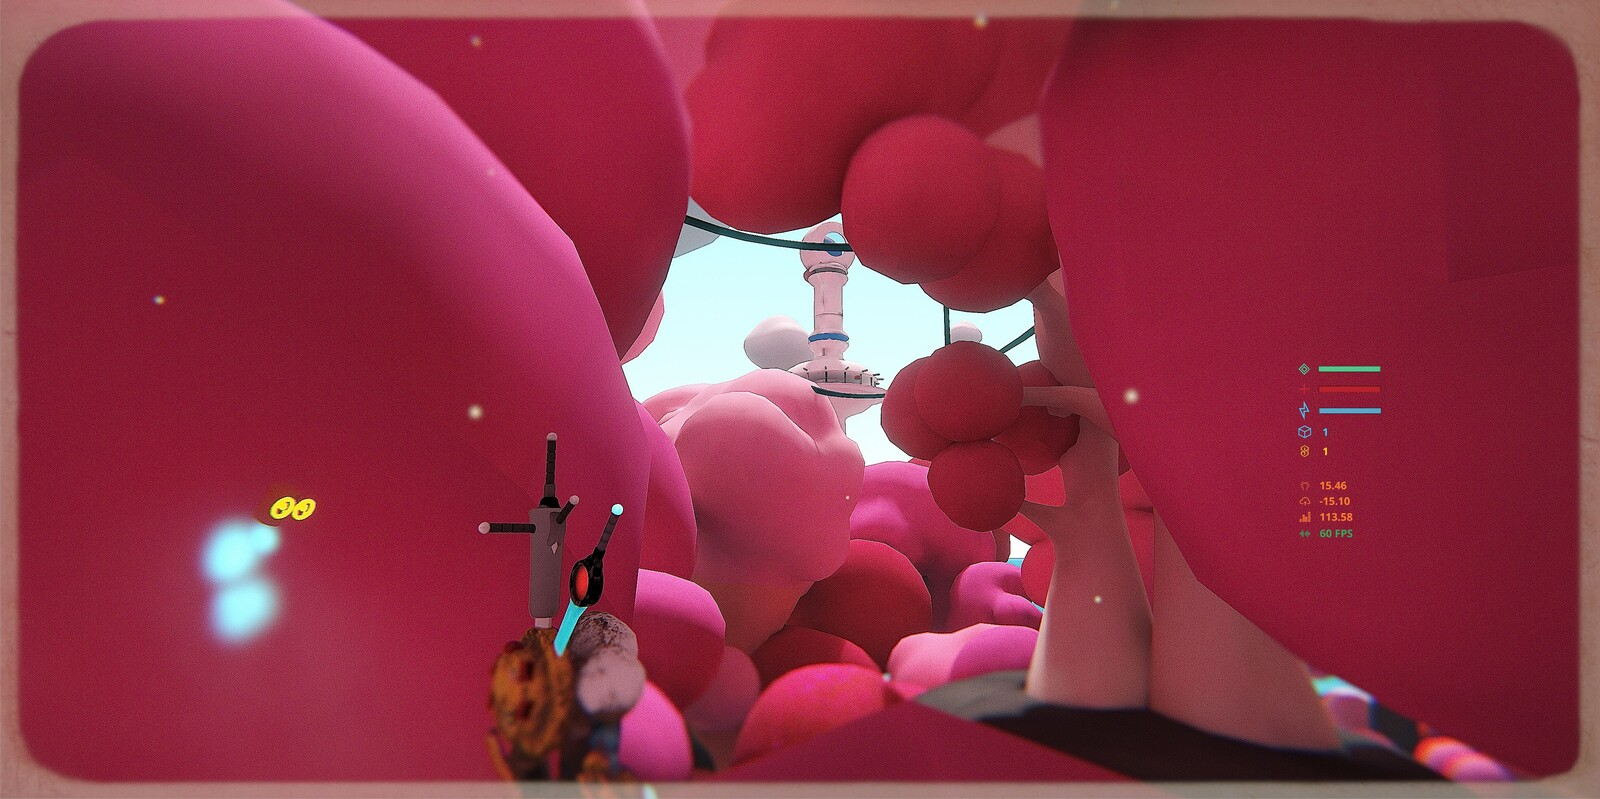 More Pink Level